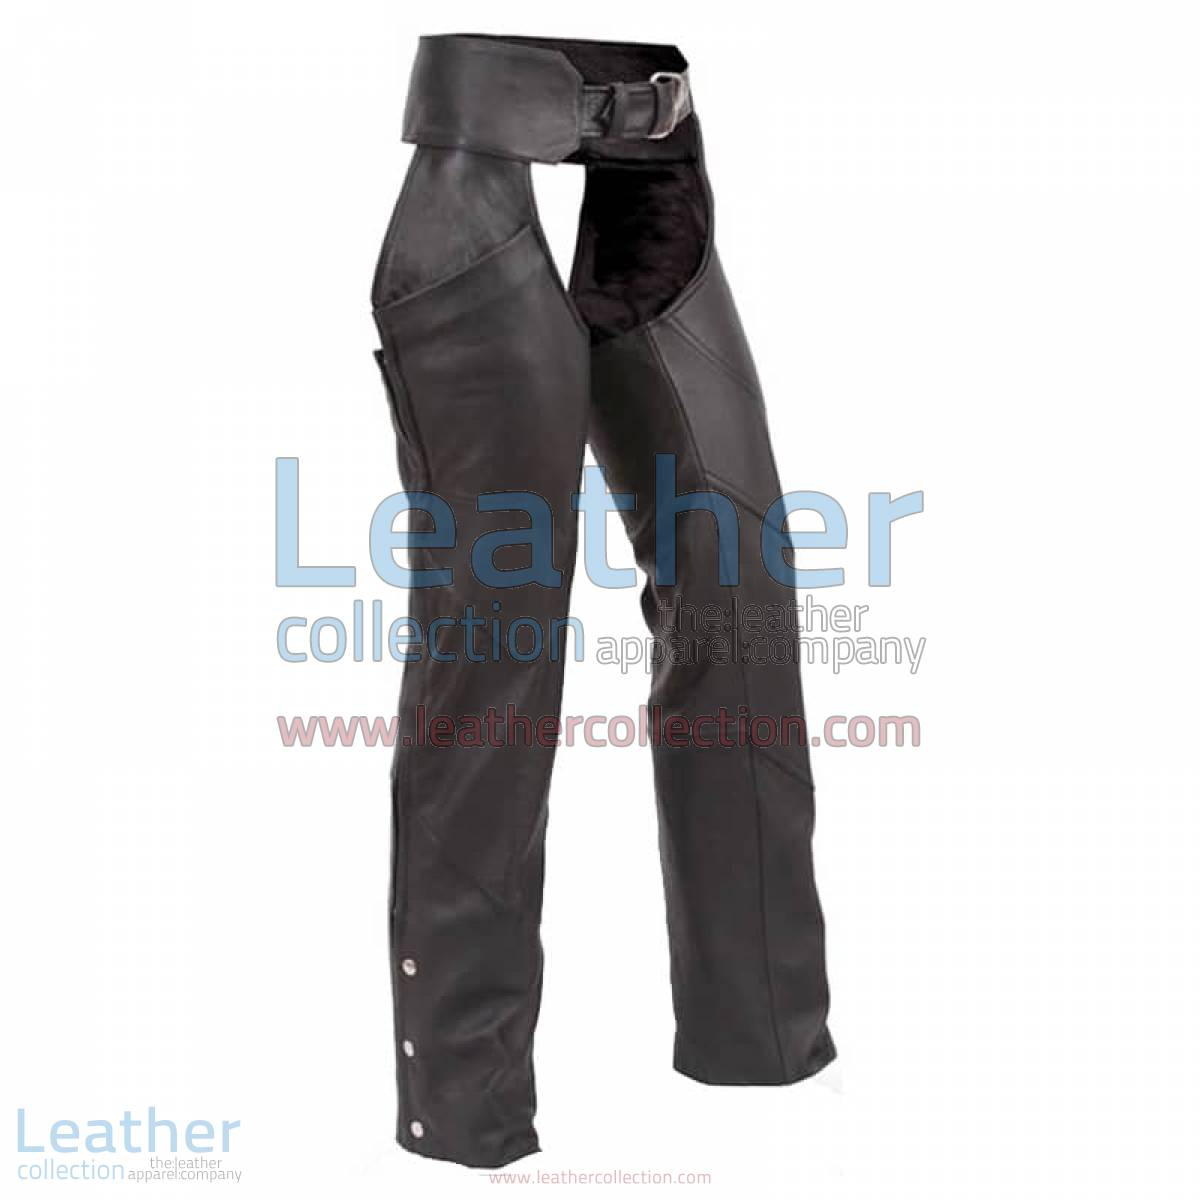 Black Leather Chaps | black leather chaps